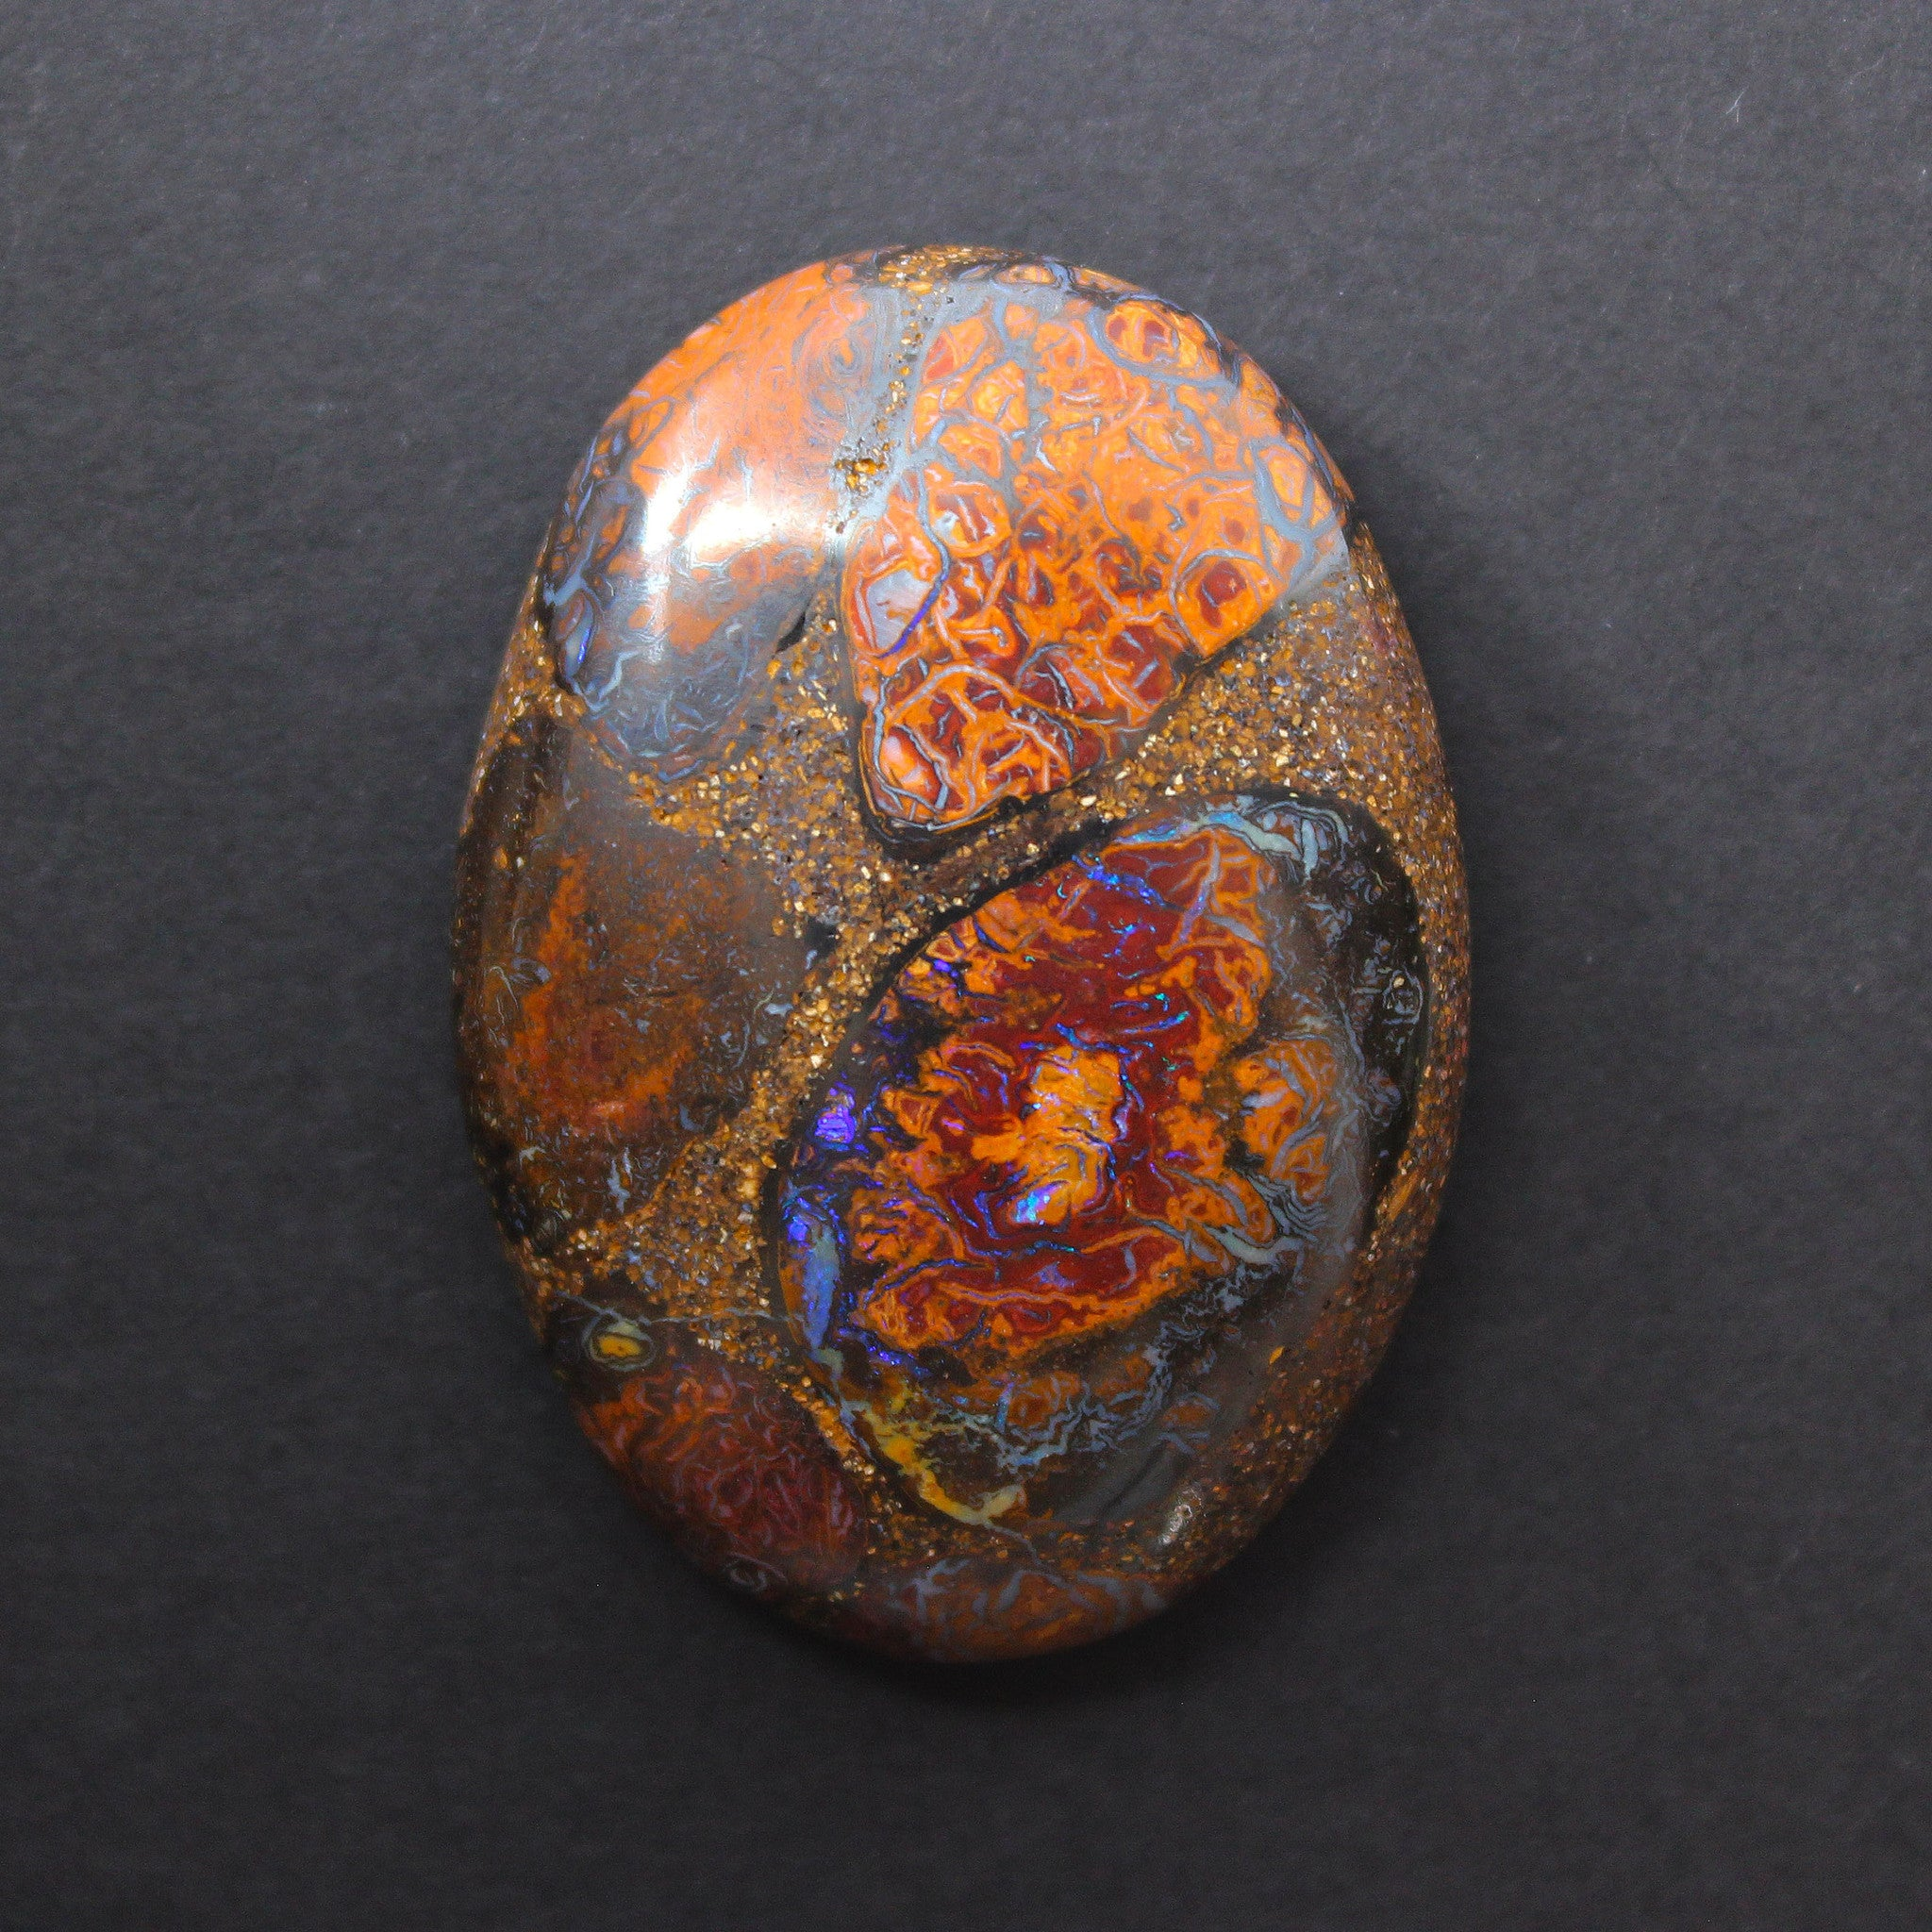 Australian boulder opal from Lightning Ridge polished cabochon CLICK HERE - Sarah Hughes - 1